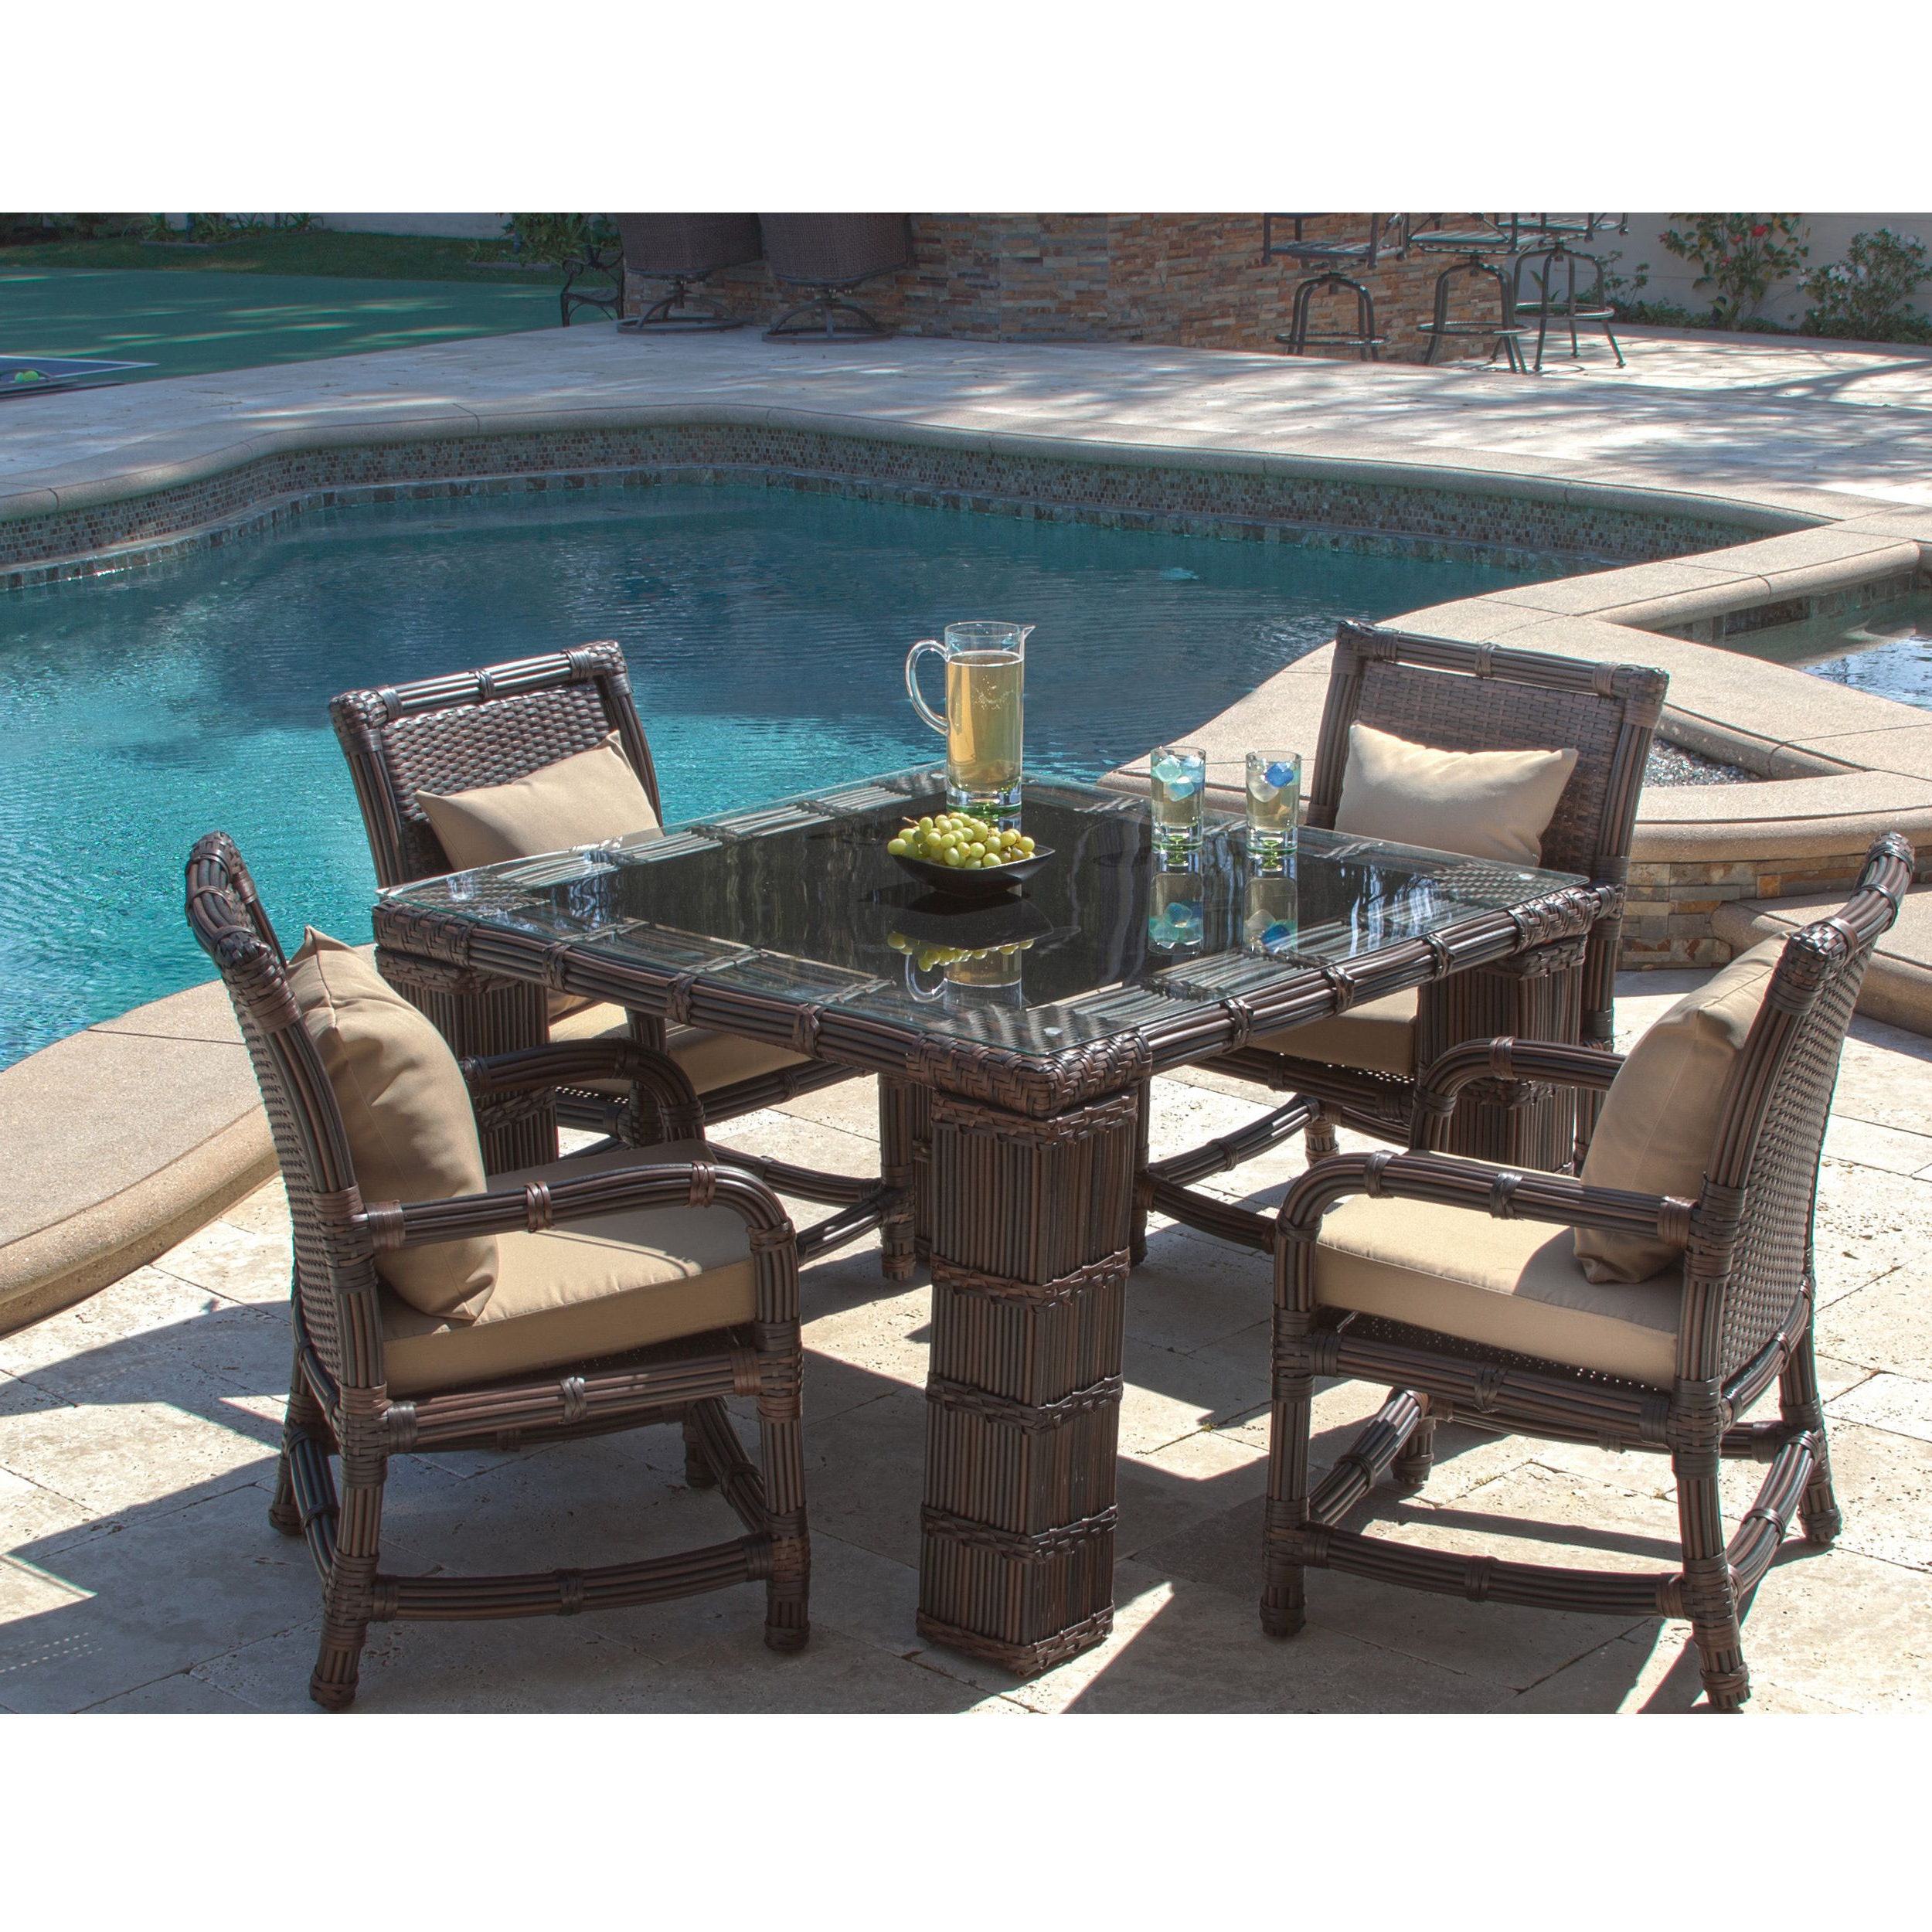 The St. Croix Rounded Outdoor Dining Set Adds A Unique Twist To Your With Newest Saintcroix 3 Piece Dining Sets (Gallery 19 of 20)